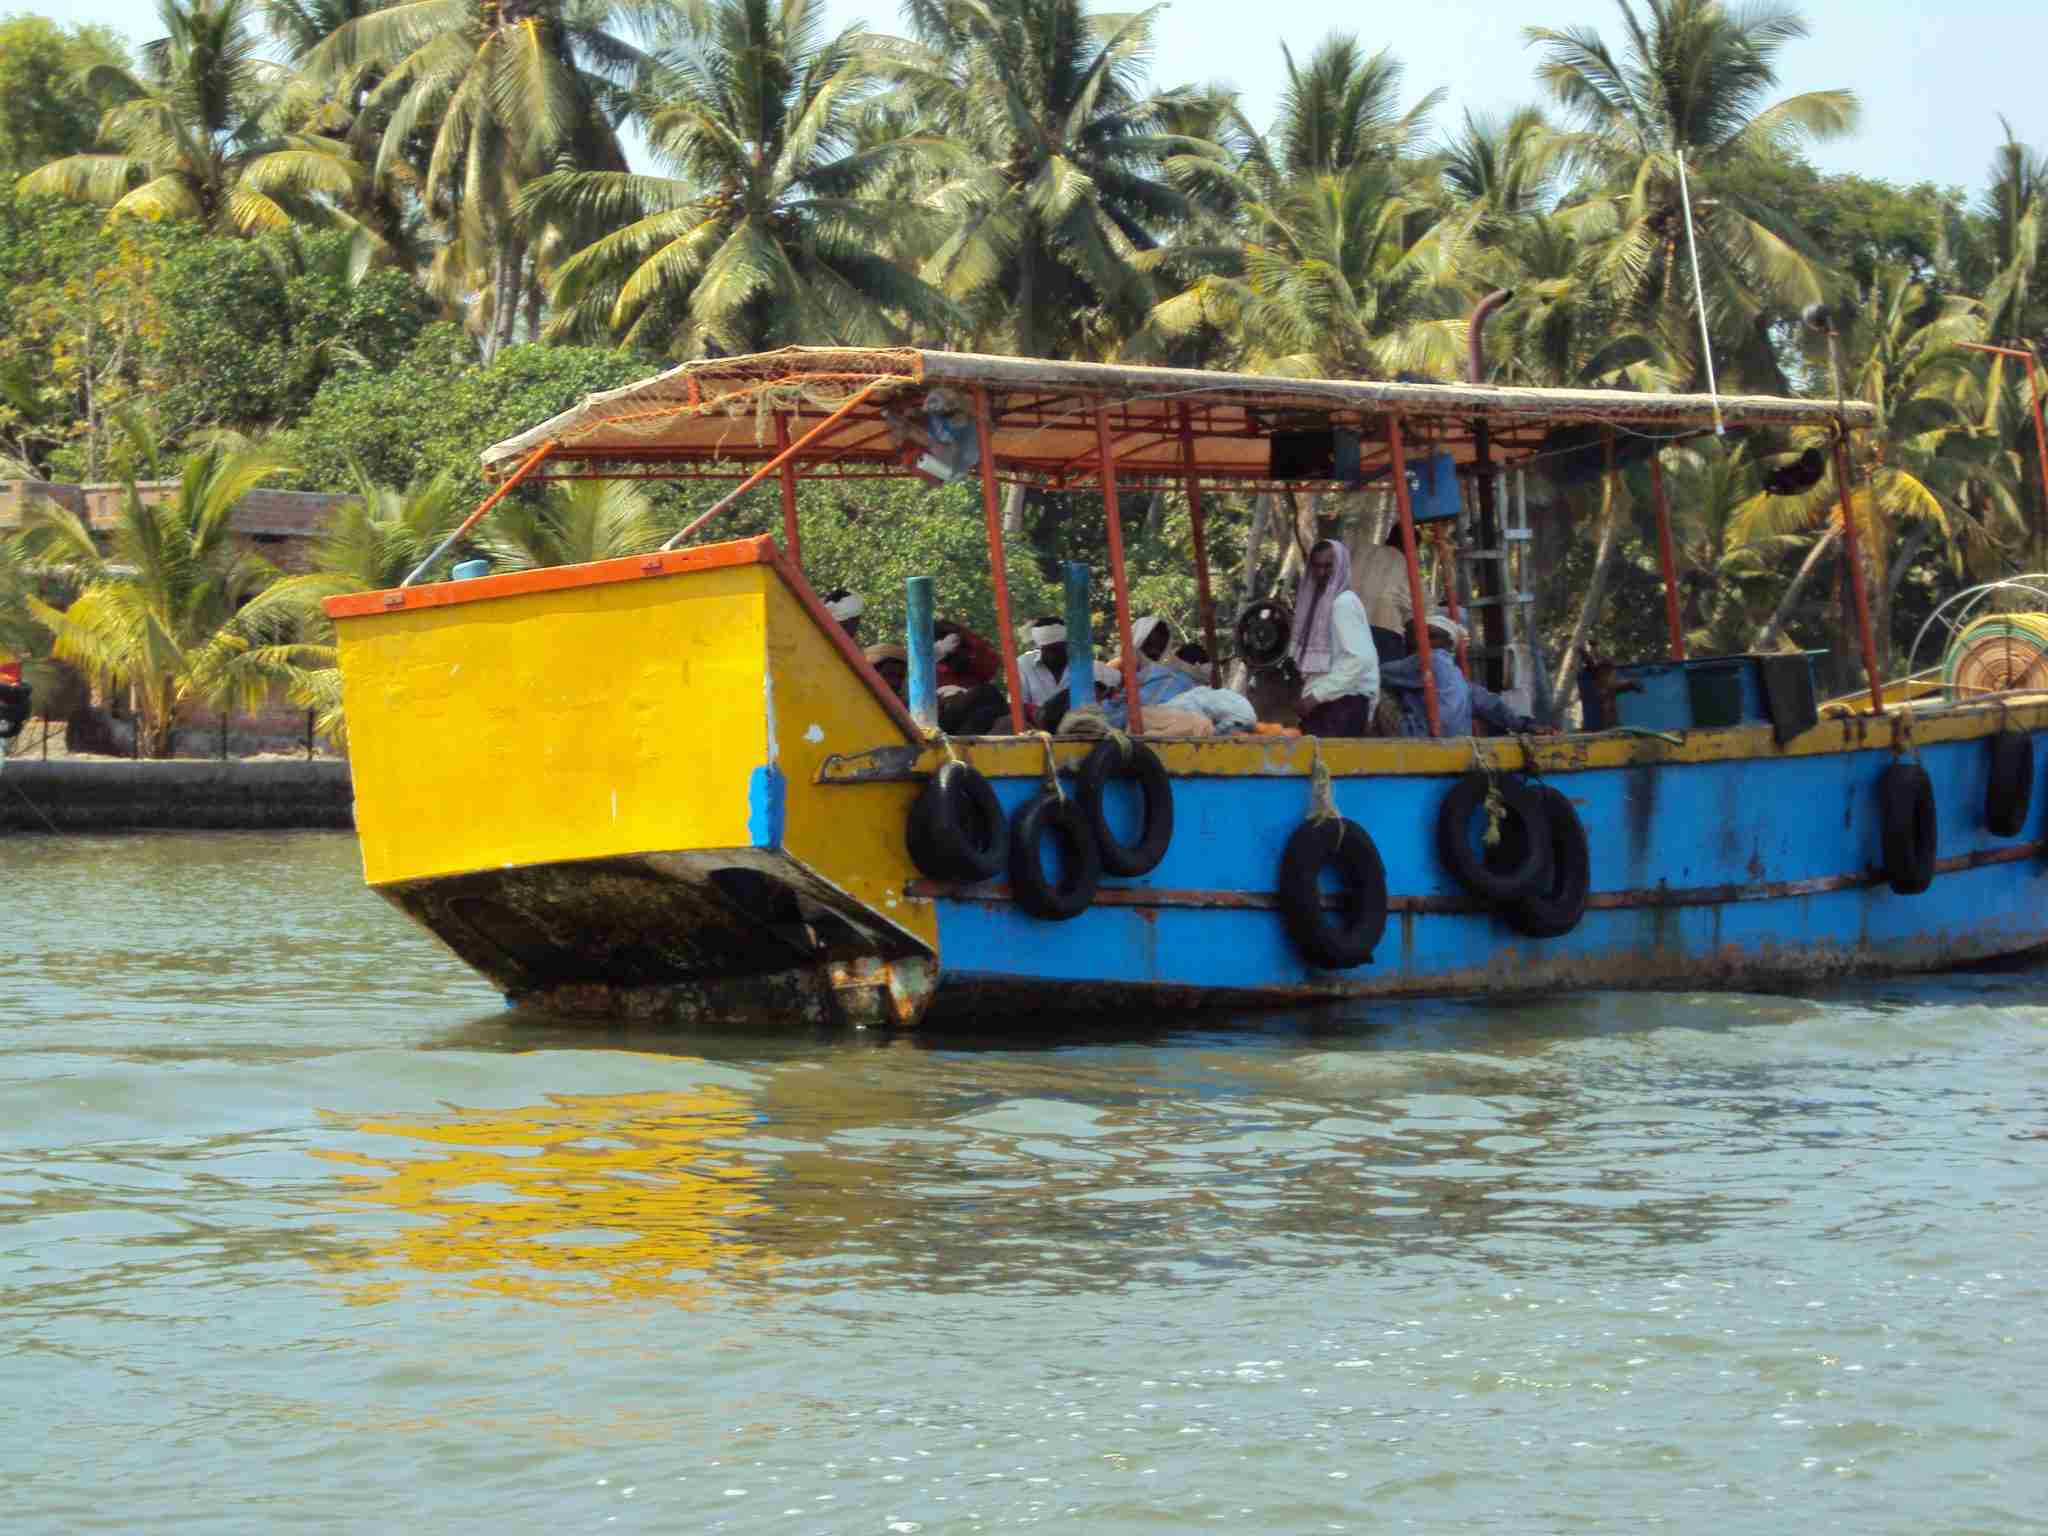 Excursion boat on the Kerala Backwaters